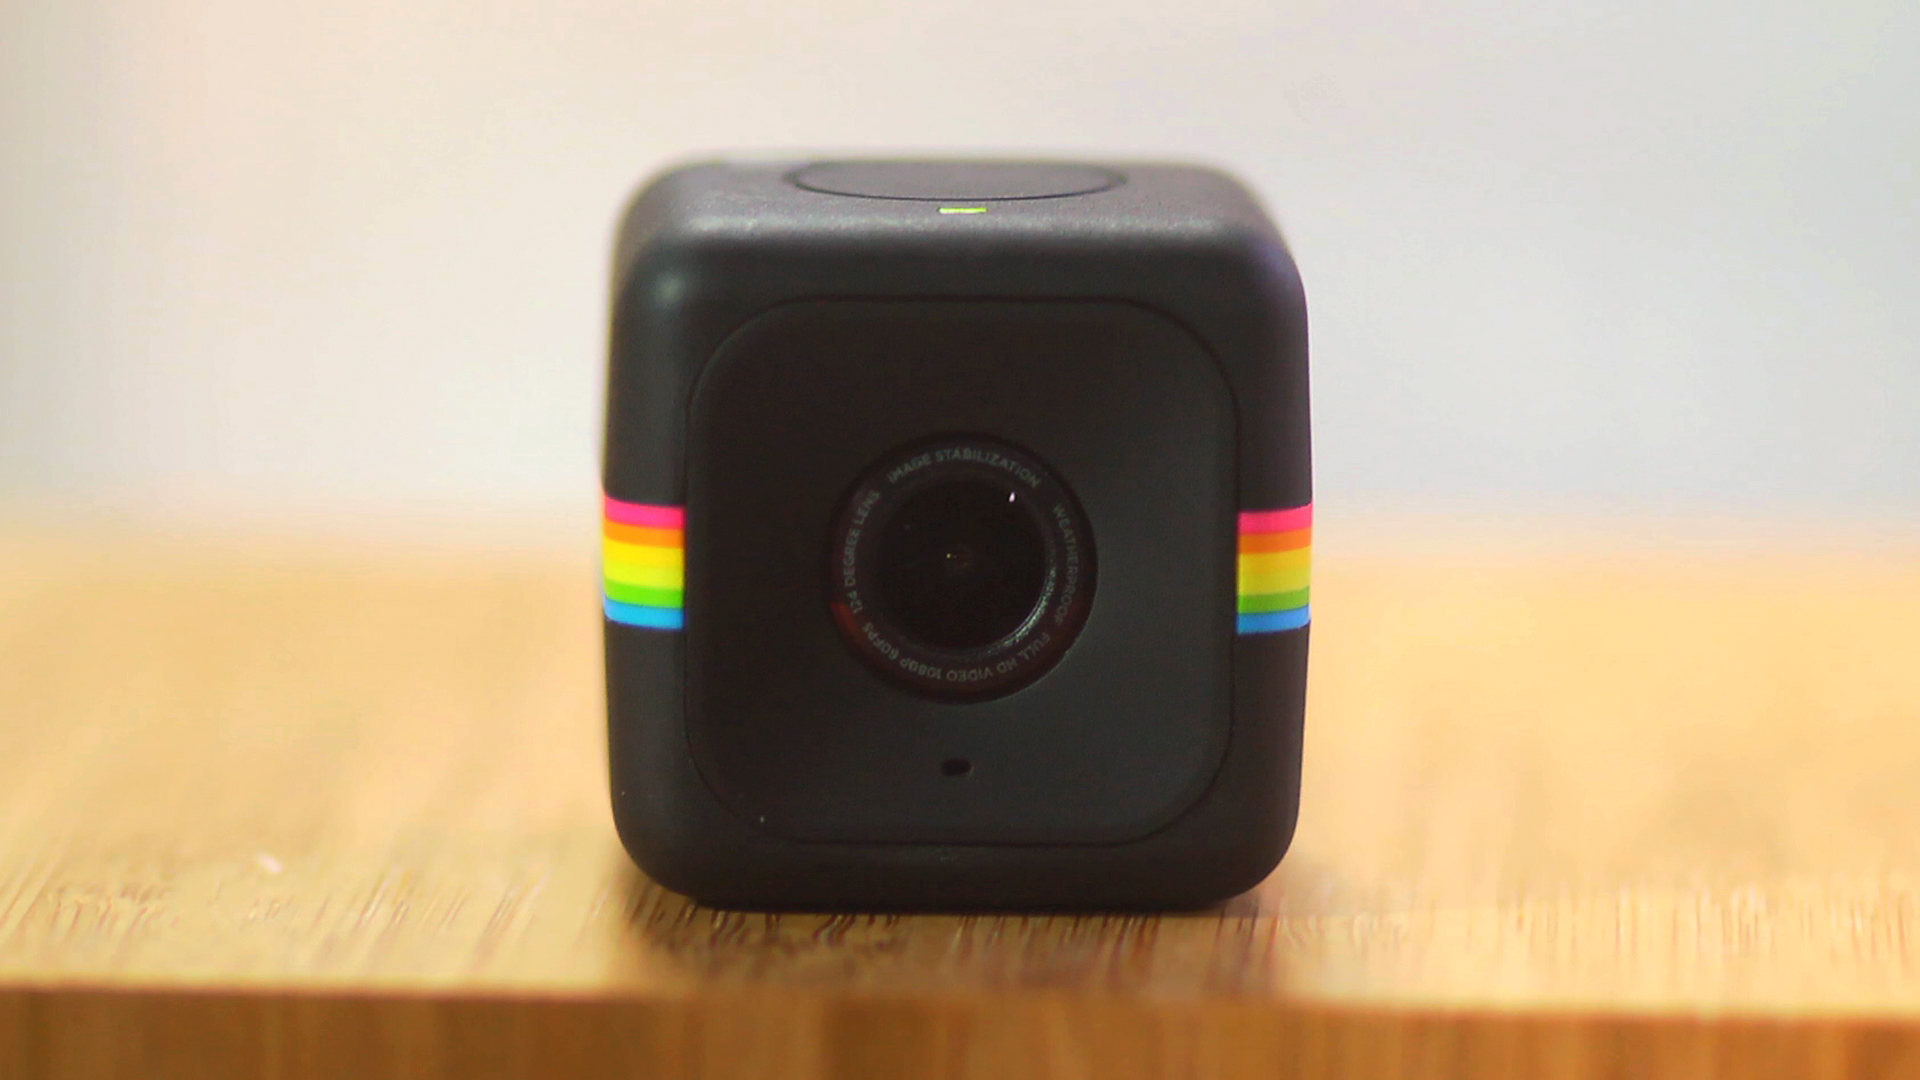 Video: Polaroid's Cube+ camera more useful thanks to Wi-Fi